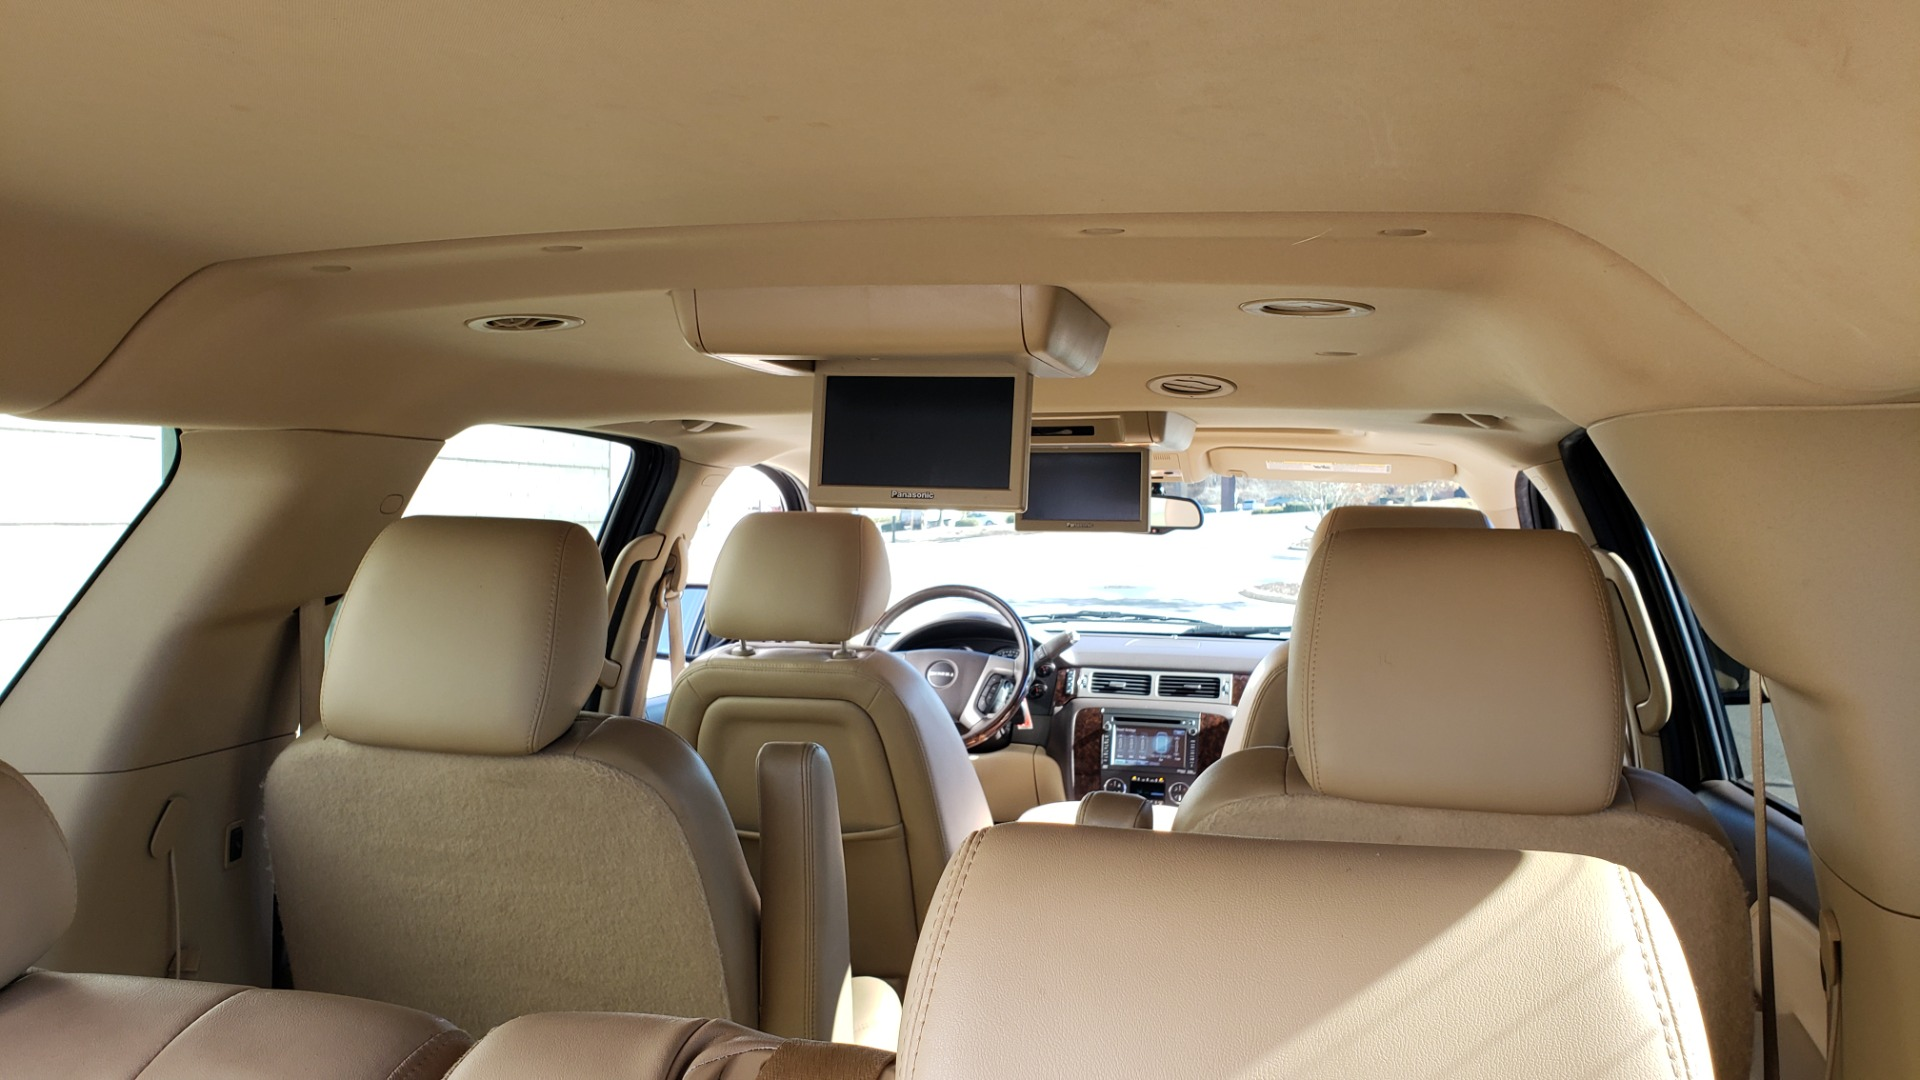 Used 2013 GMC YUKON XL DENALI / AWD / NAV / SUNROOF / 3-ROW / ENTERTAINMENT for sale Sold at Formula Imports in Charlotte NC 28227 17